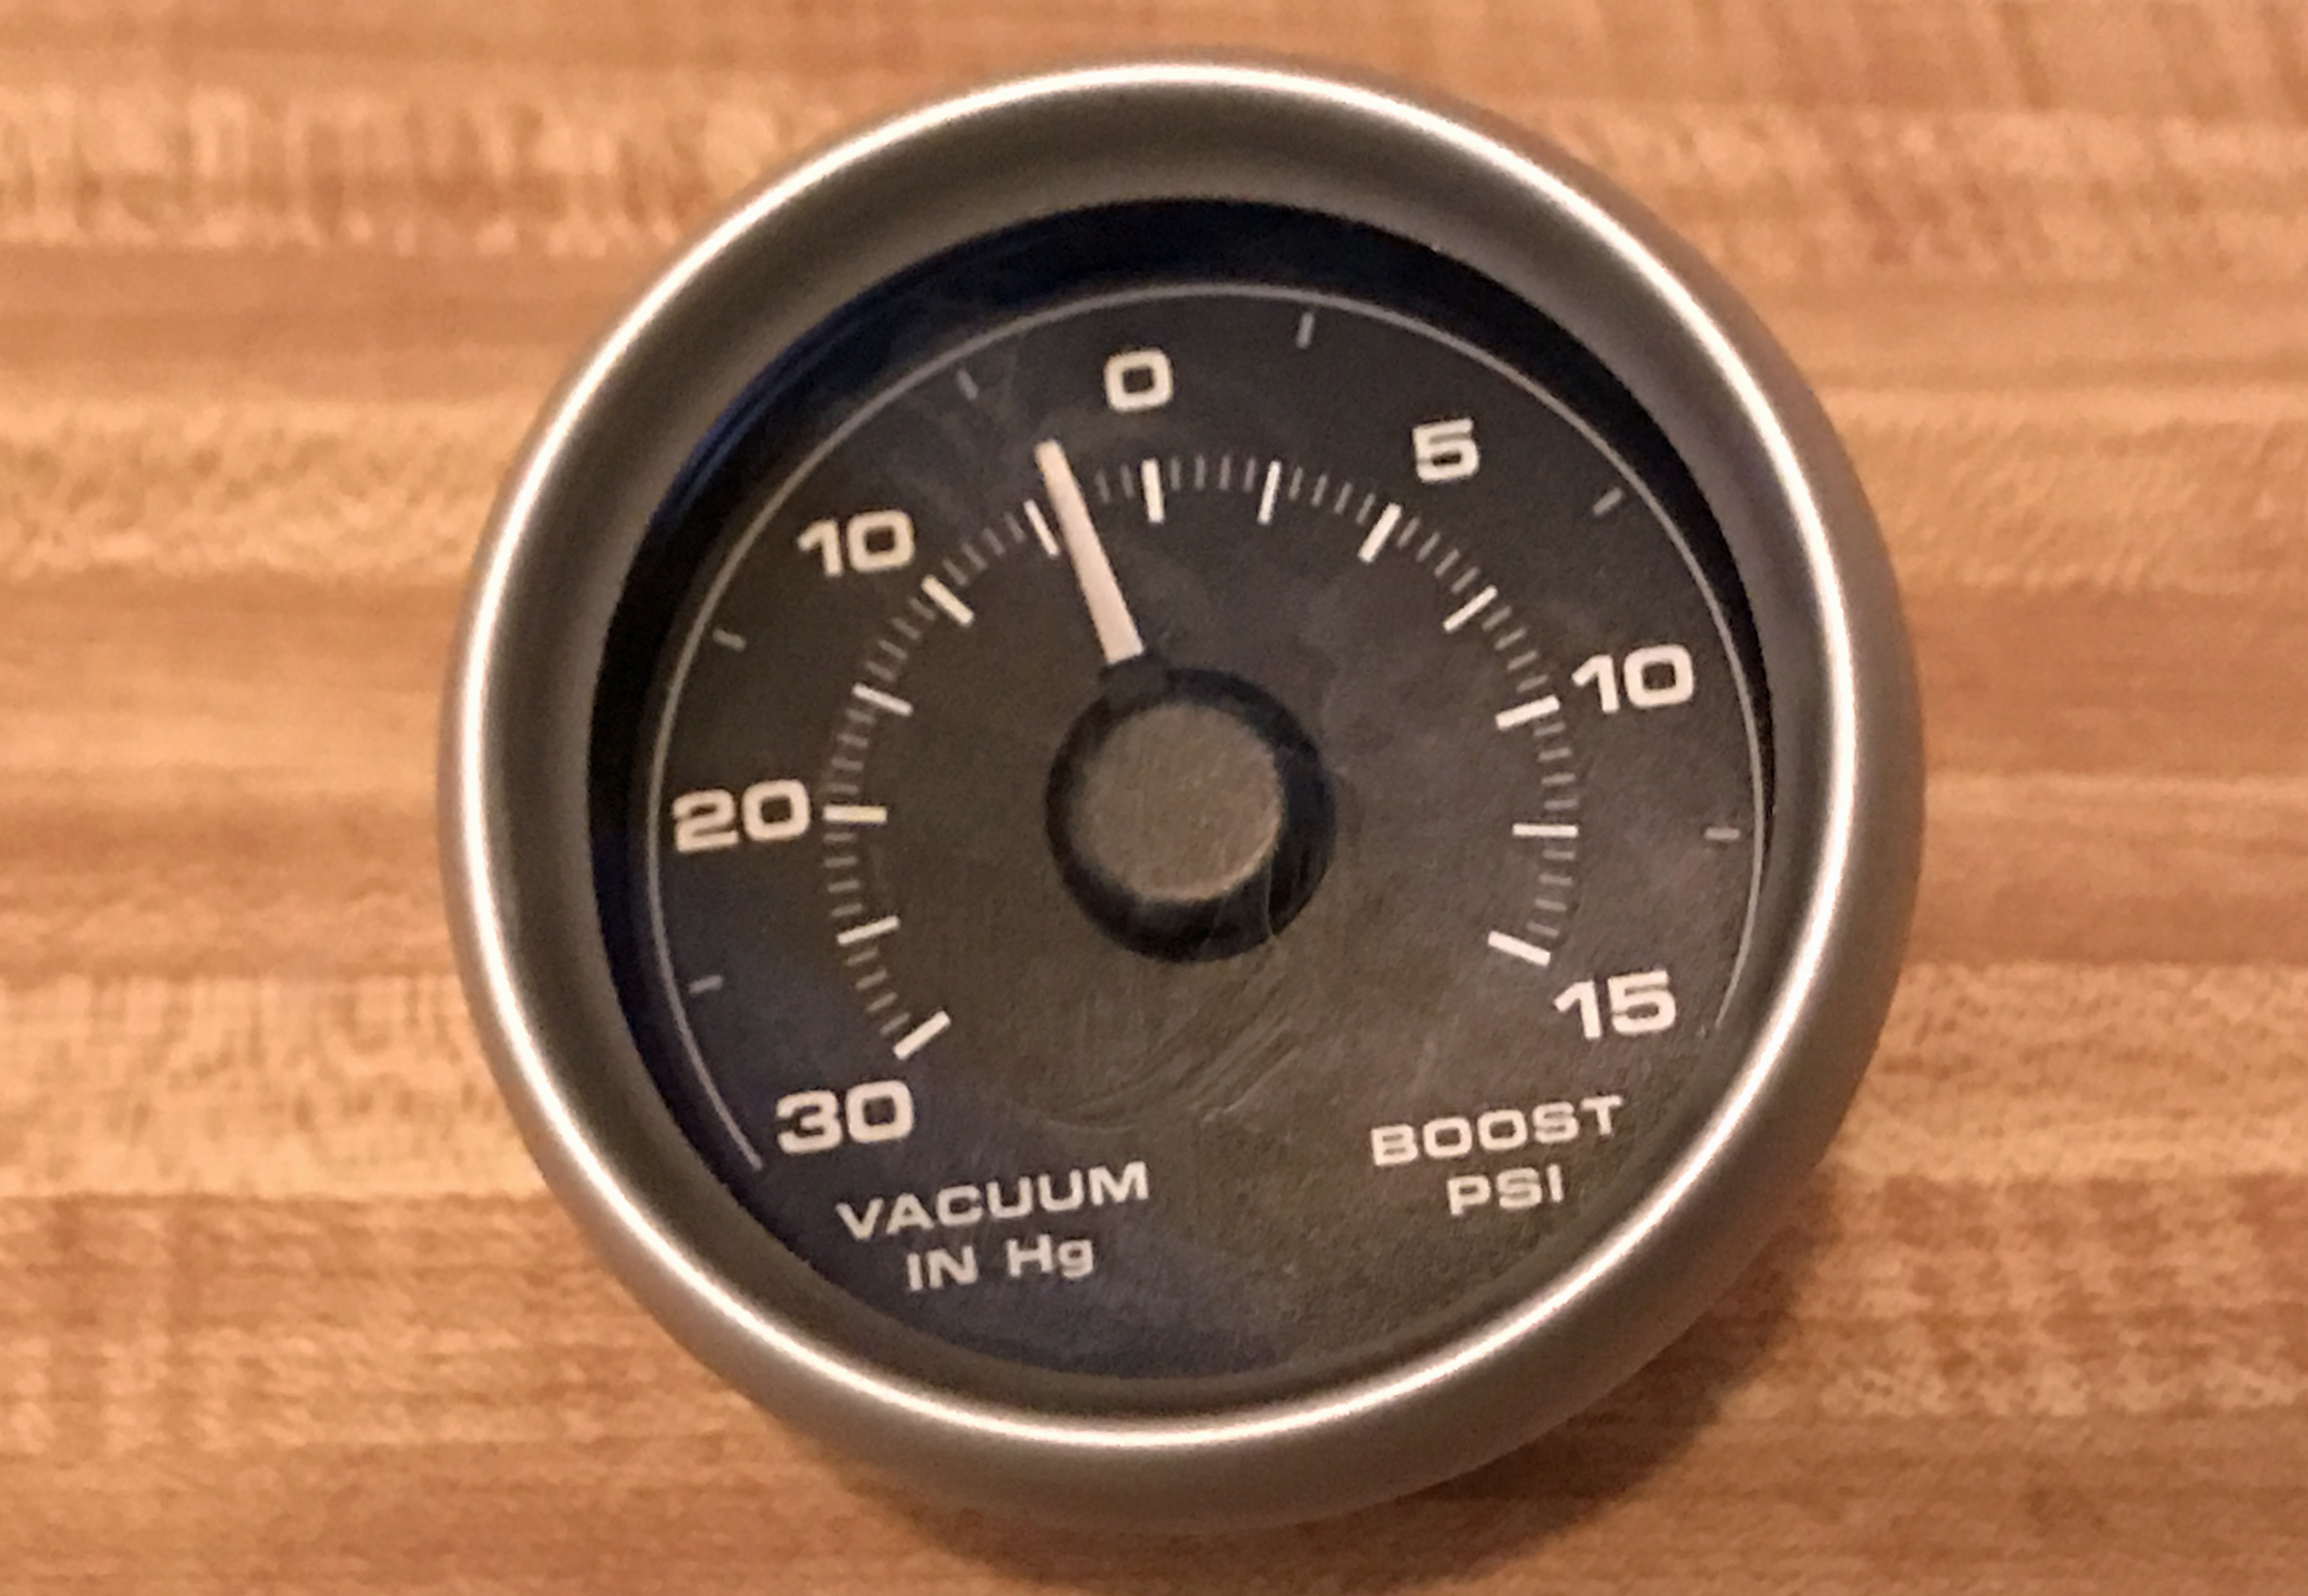 2005 Ford GT Long Term Vacuum Gauge